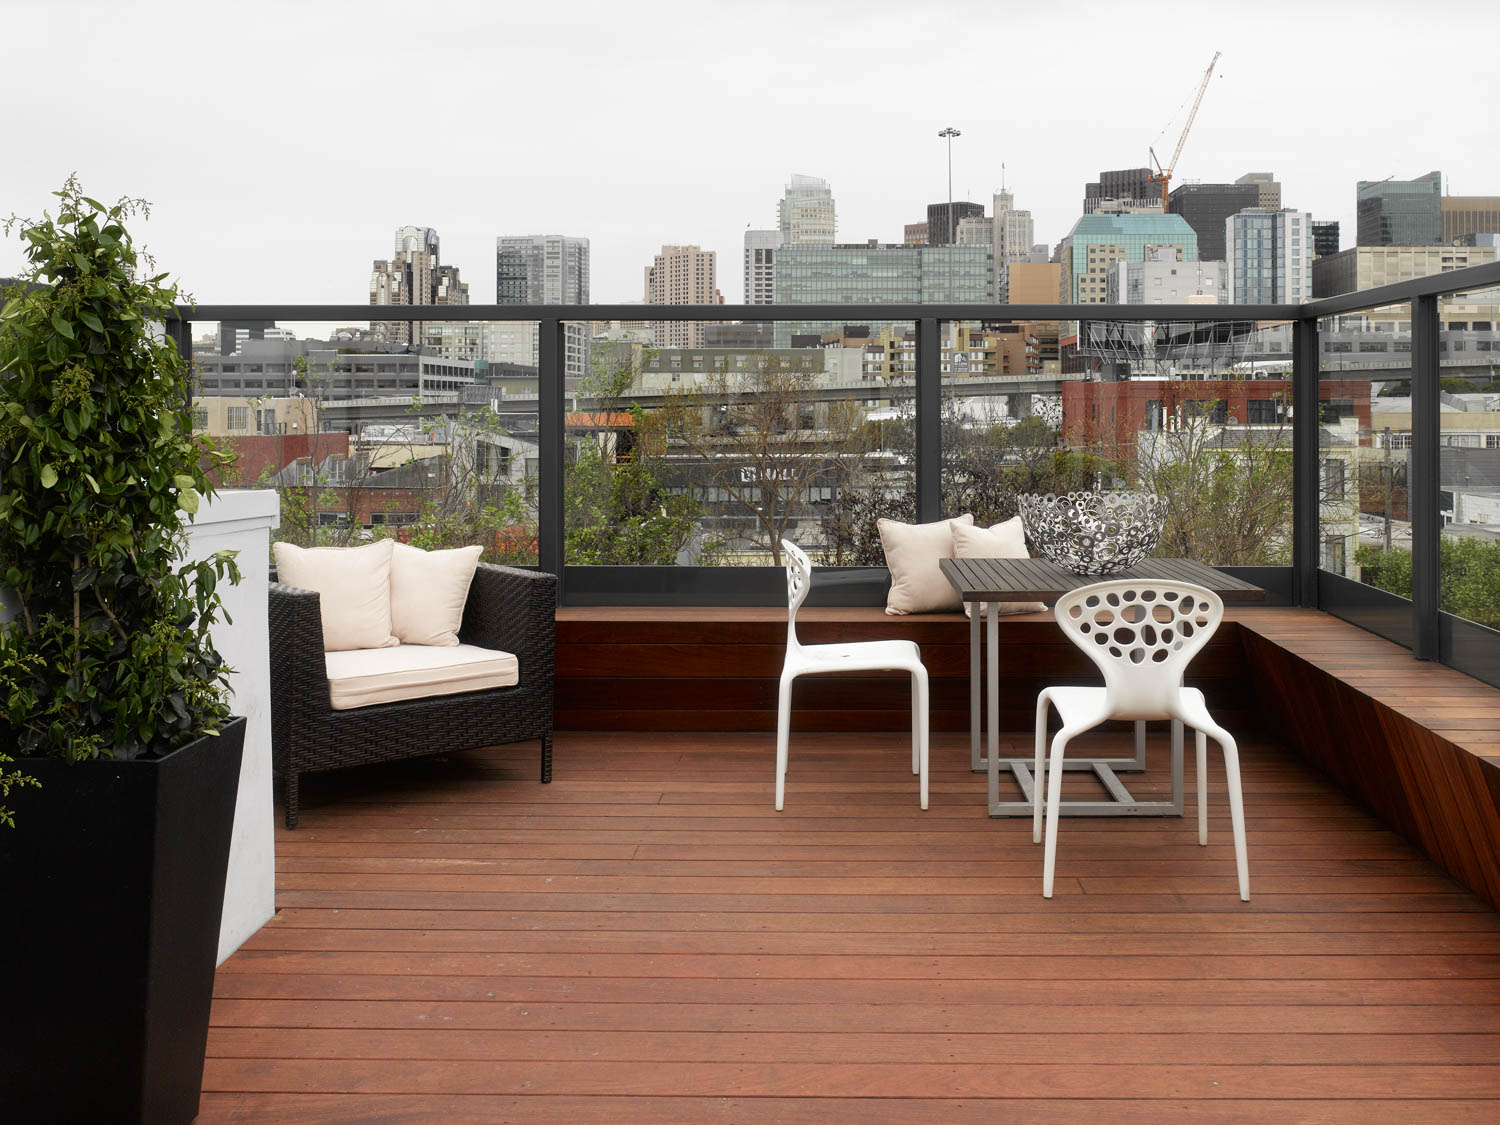 G U South Park roof deck 9648.jpg